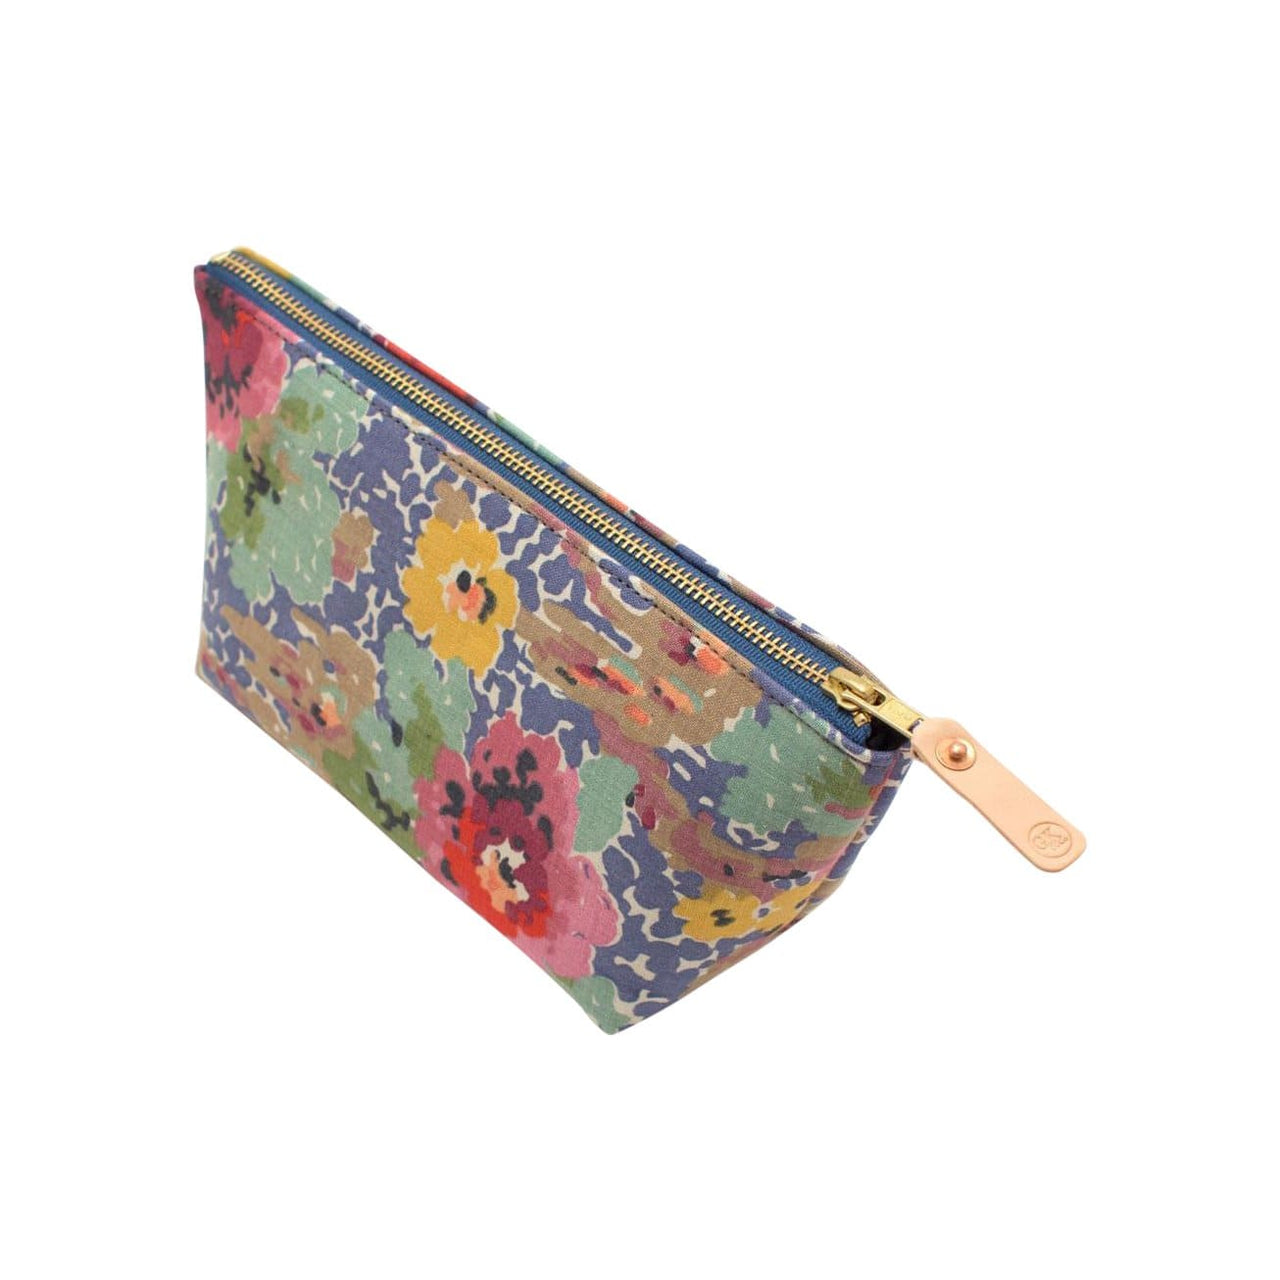 General Knot & Co. Wallets, Pouches & Accessories Vintage Indian Head Floral Travel Clutch